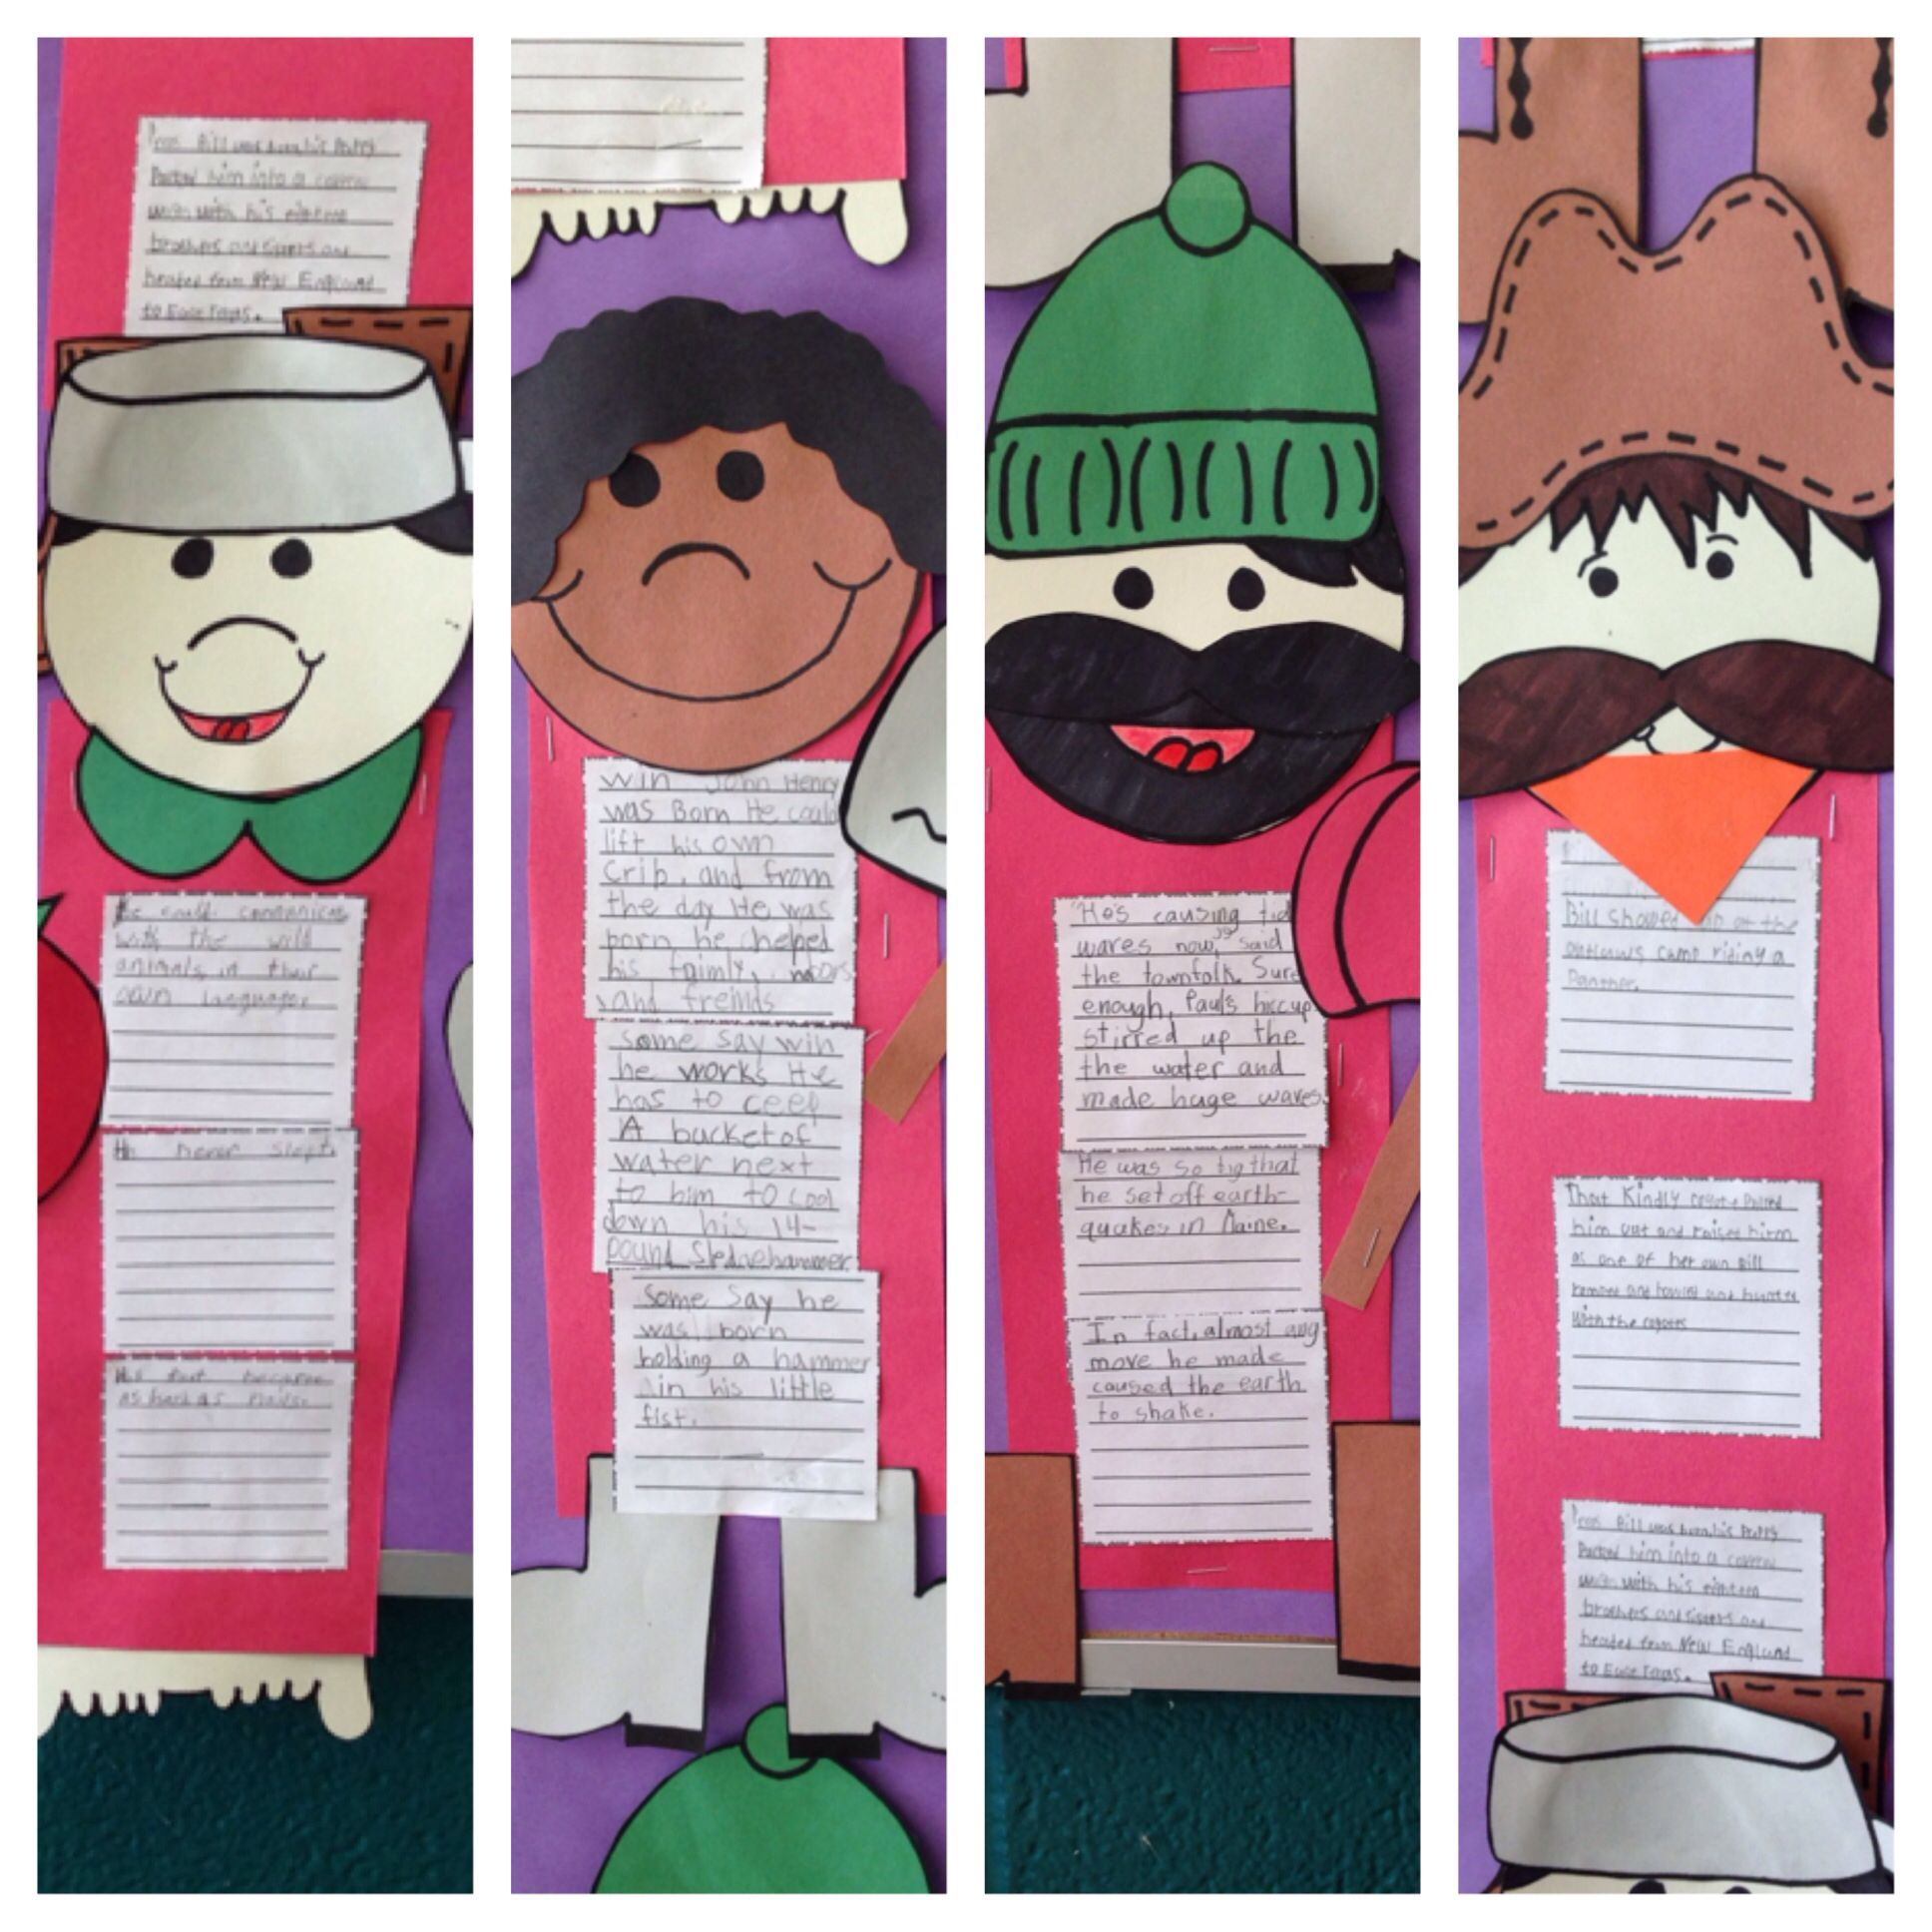 Worksheets John Henry Worksheets tall tale graphic organizers johnny appleseed john henry paul bunyan pecos